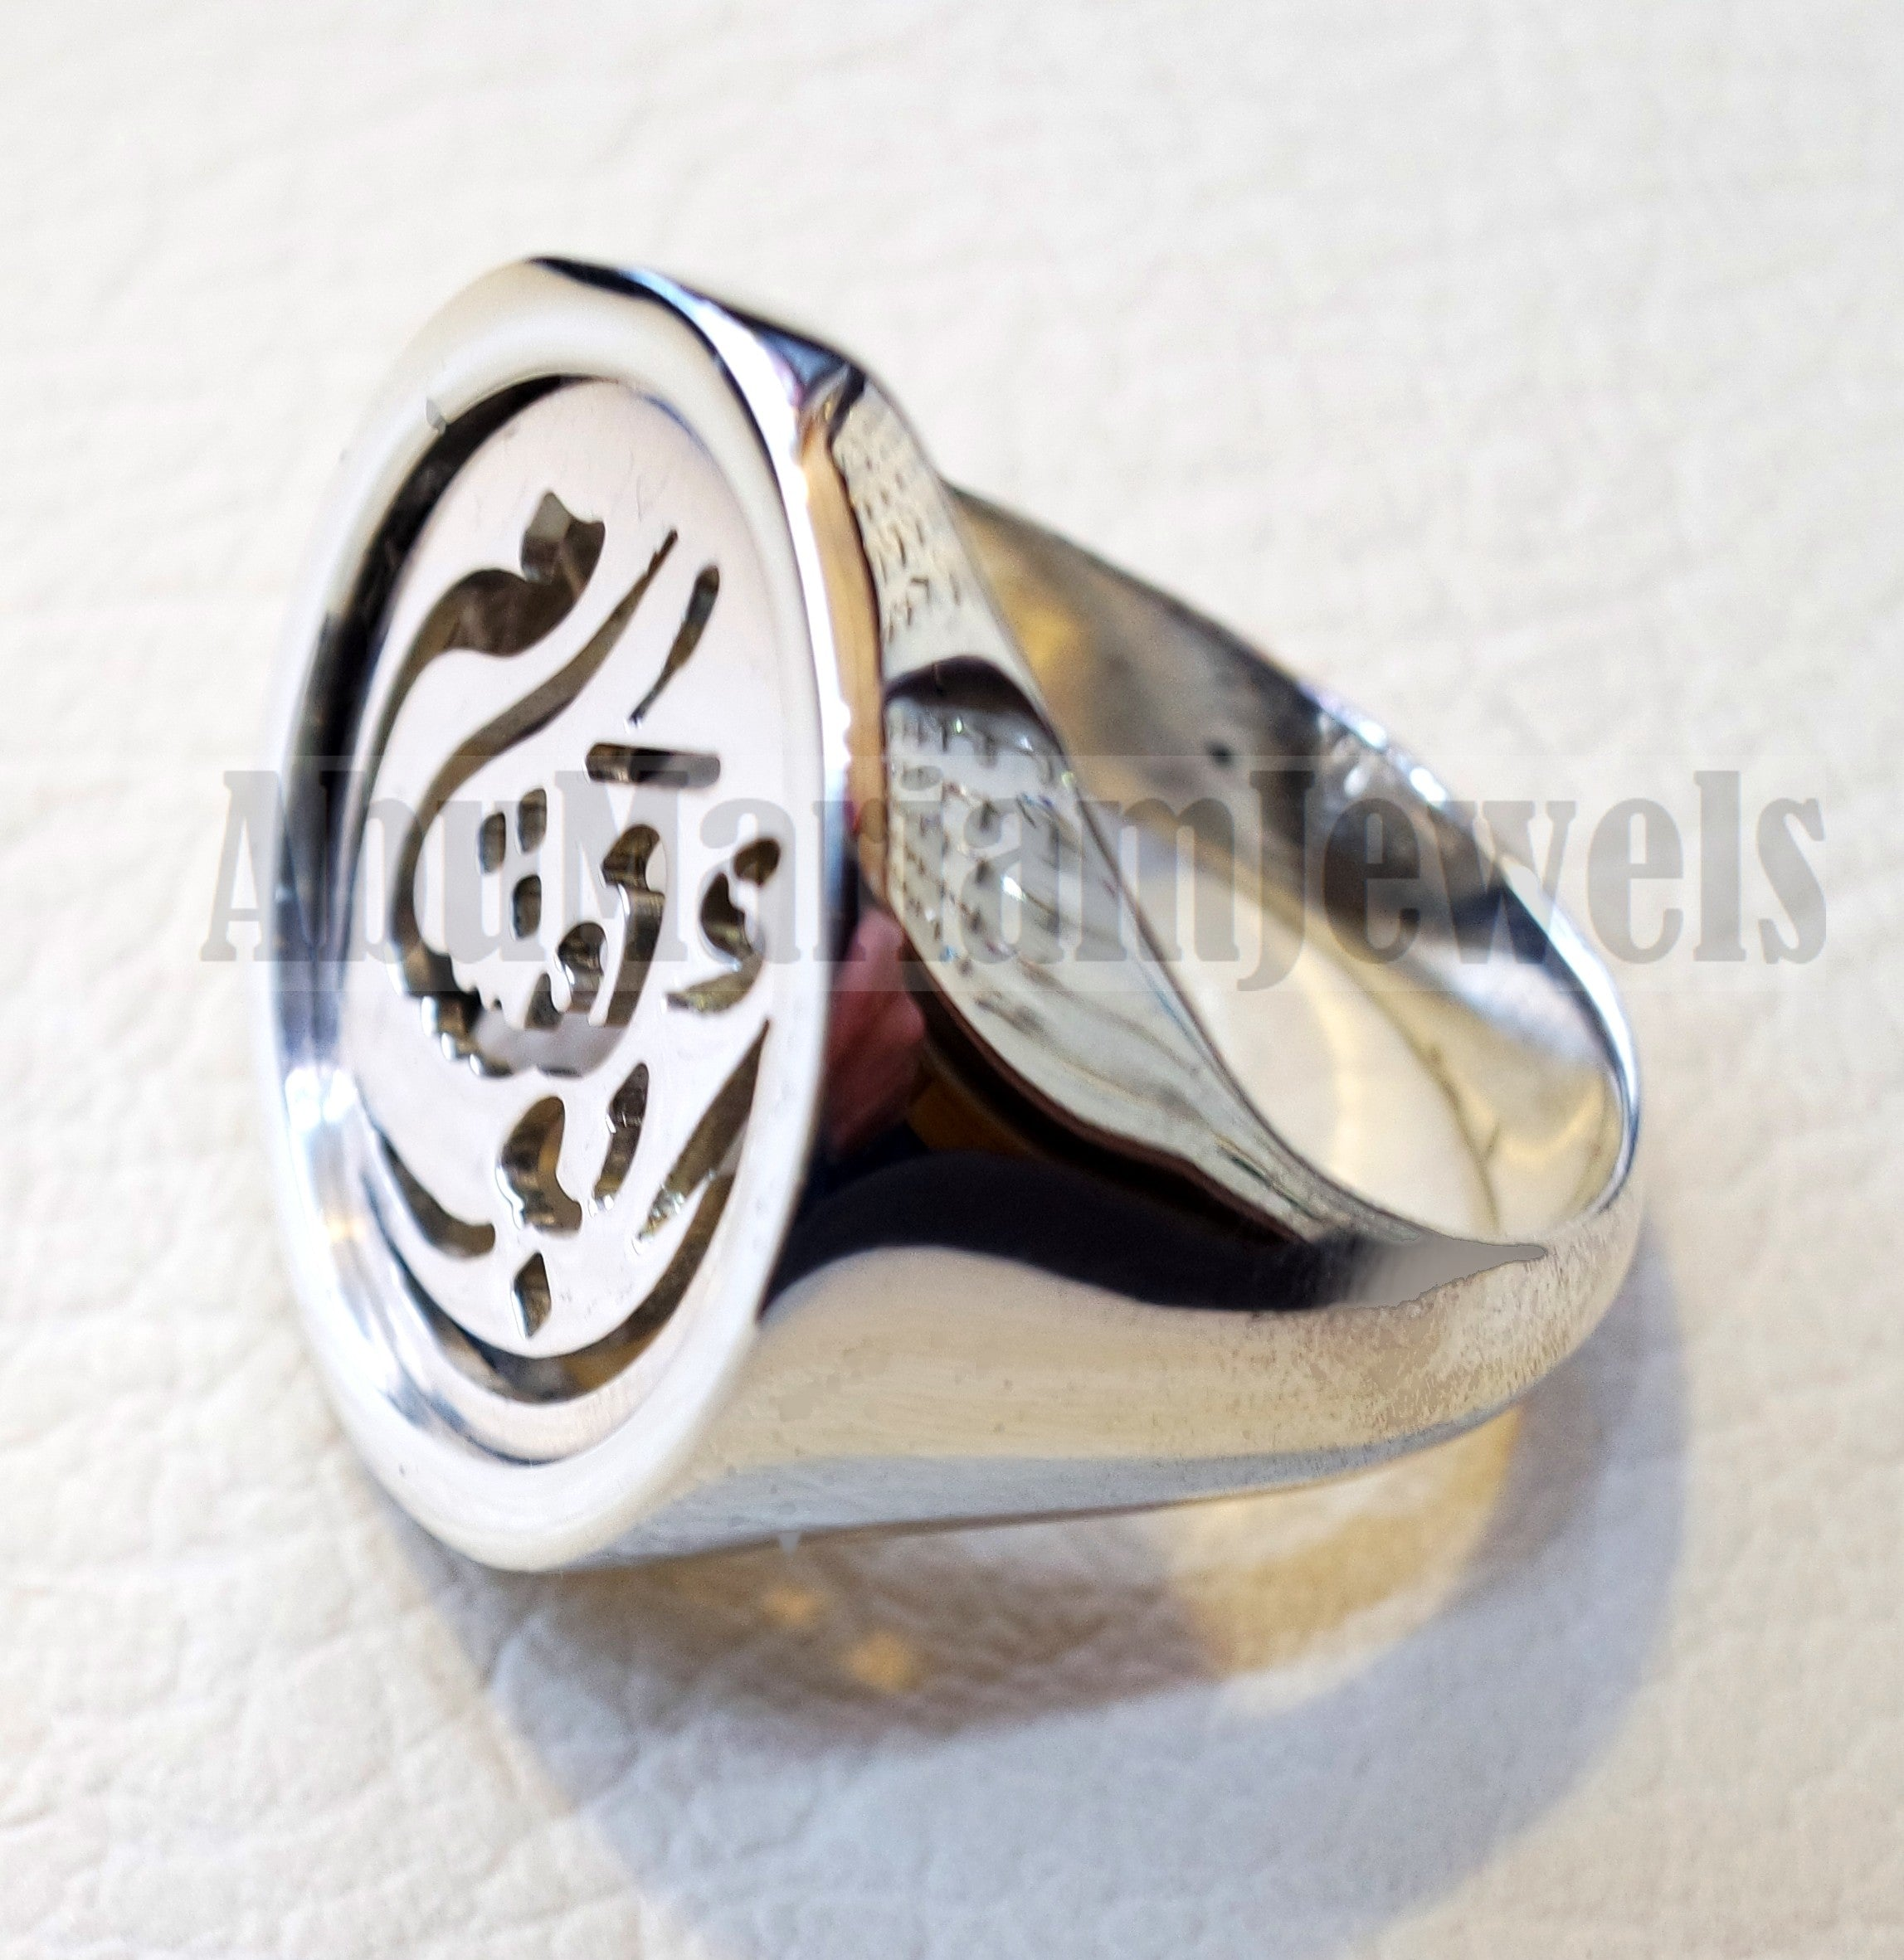 Customized Arabic calligraphy names handmade round heavy ring personalized jewelry sterling silver 925 any size AMM1001 خاتم اسم تفصيل